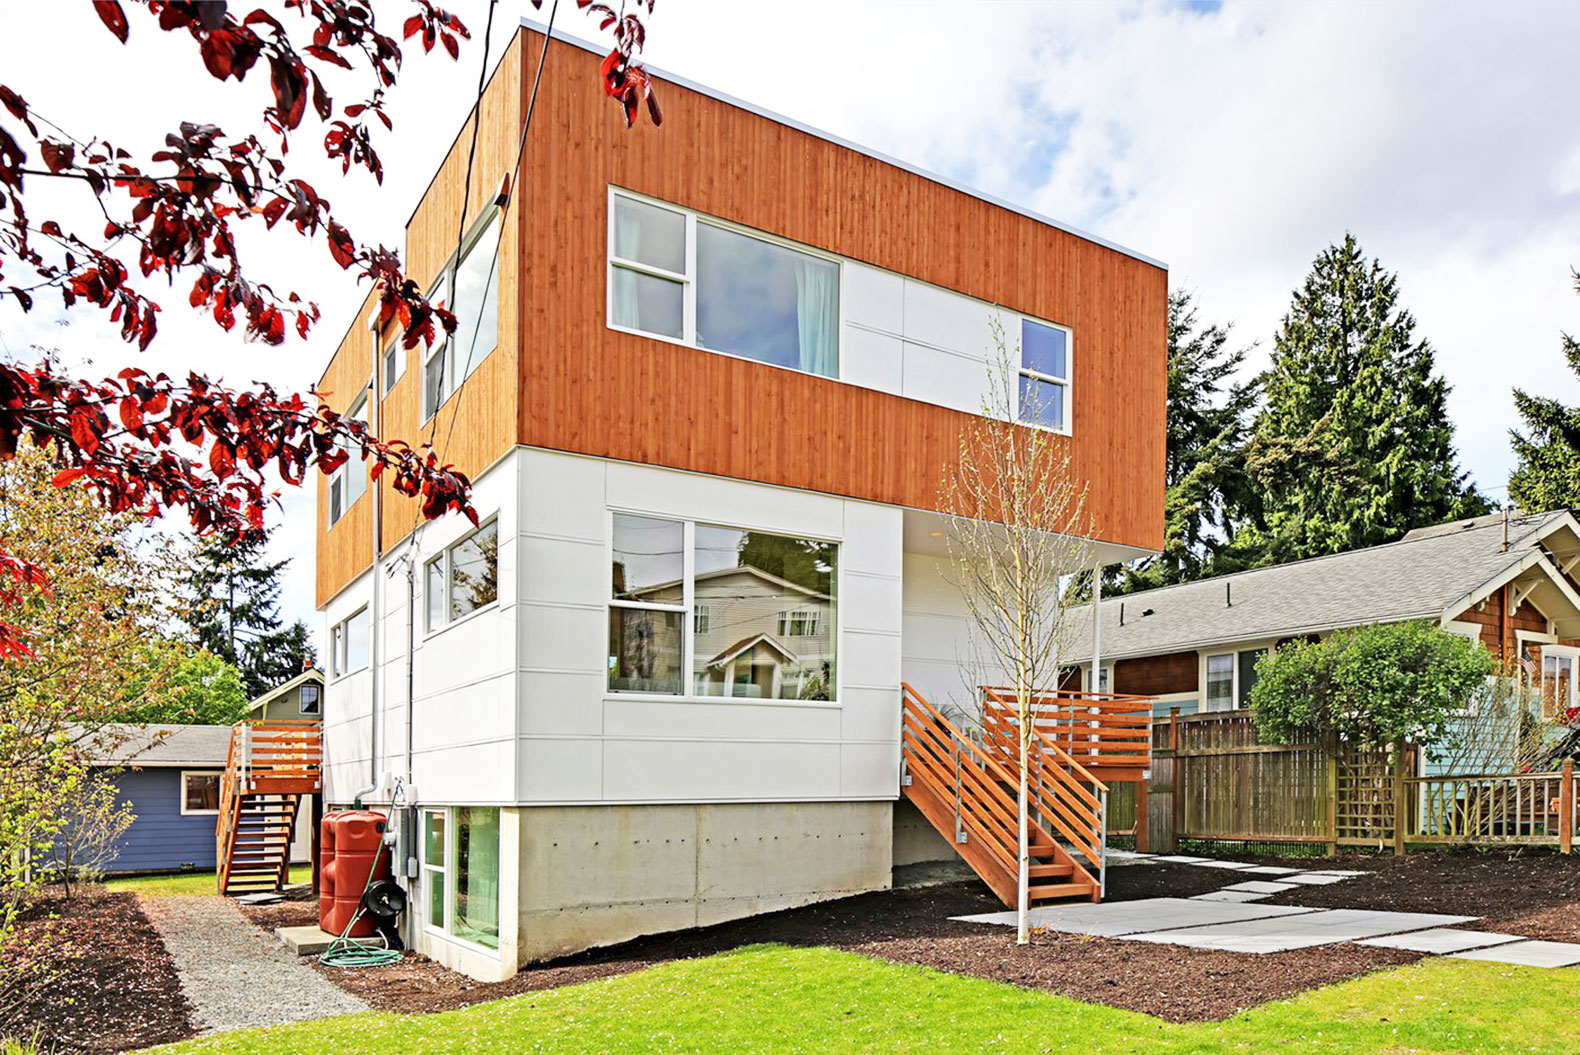 Merveilleux This Stunning Passive Home In Seattle Is 51% More Energy Efficient Than Its  Neighbors Greenfab